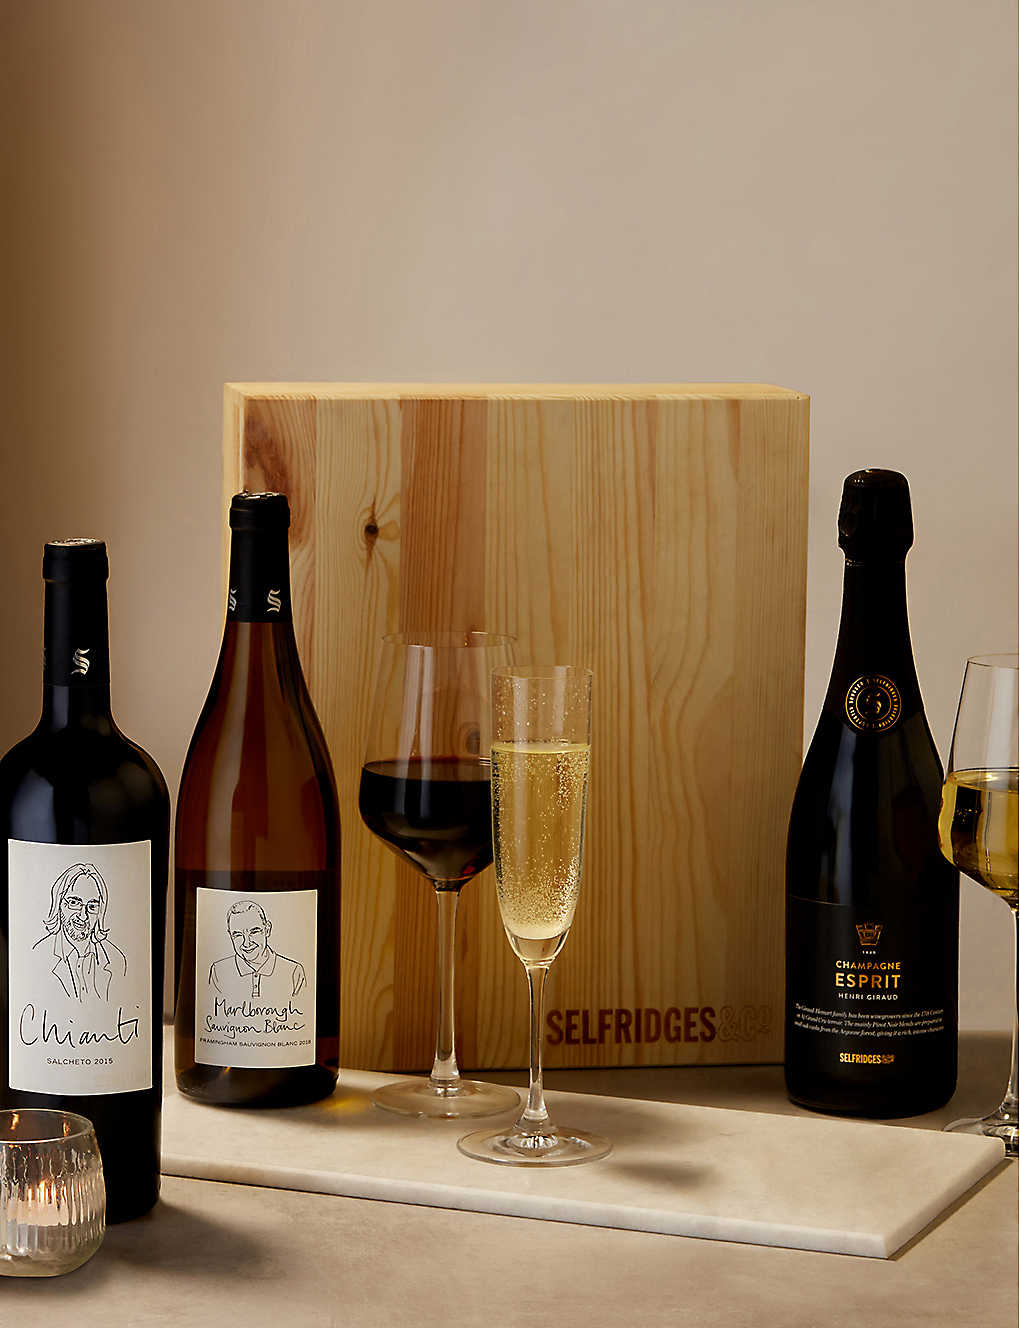 SELFRIDGES SELECTION: Wine and champagne trio